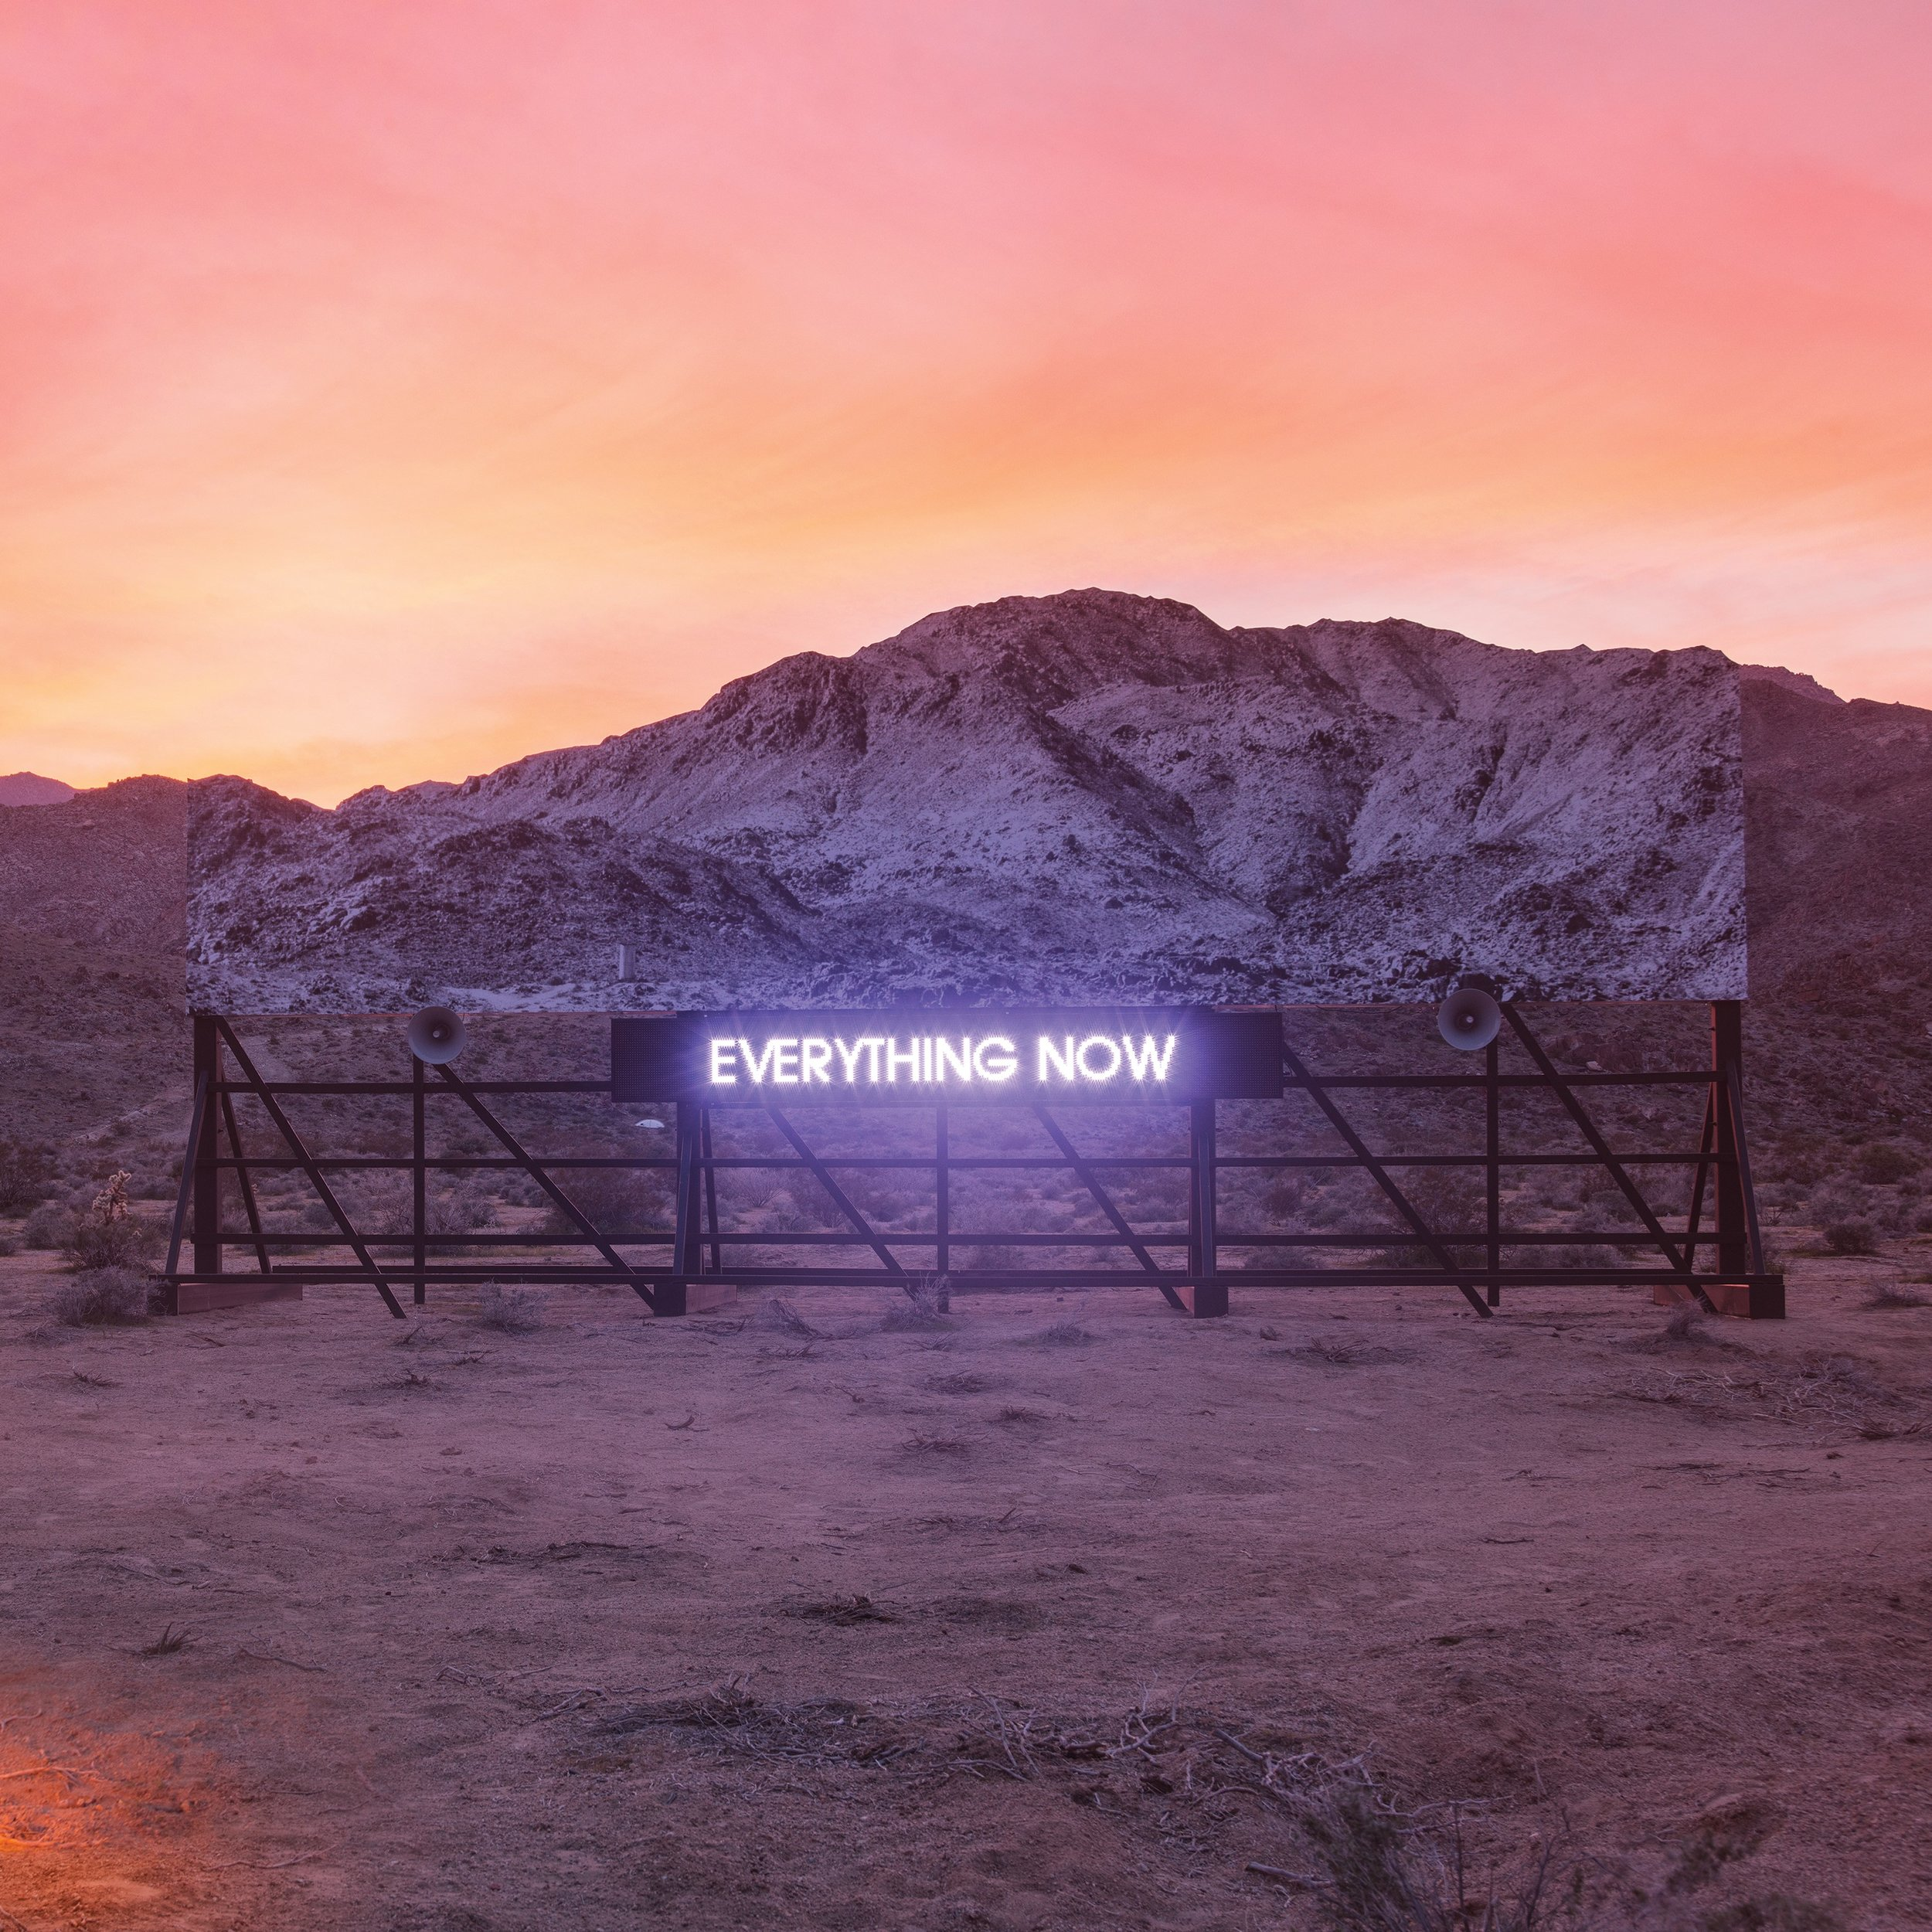 Arcade-Fire-Everything-Now-Day-Version.jpg